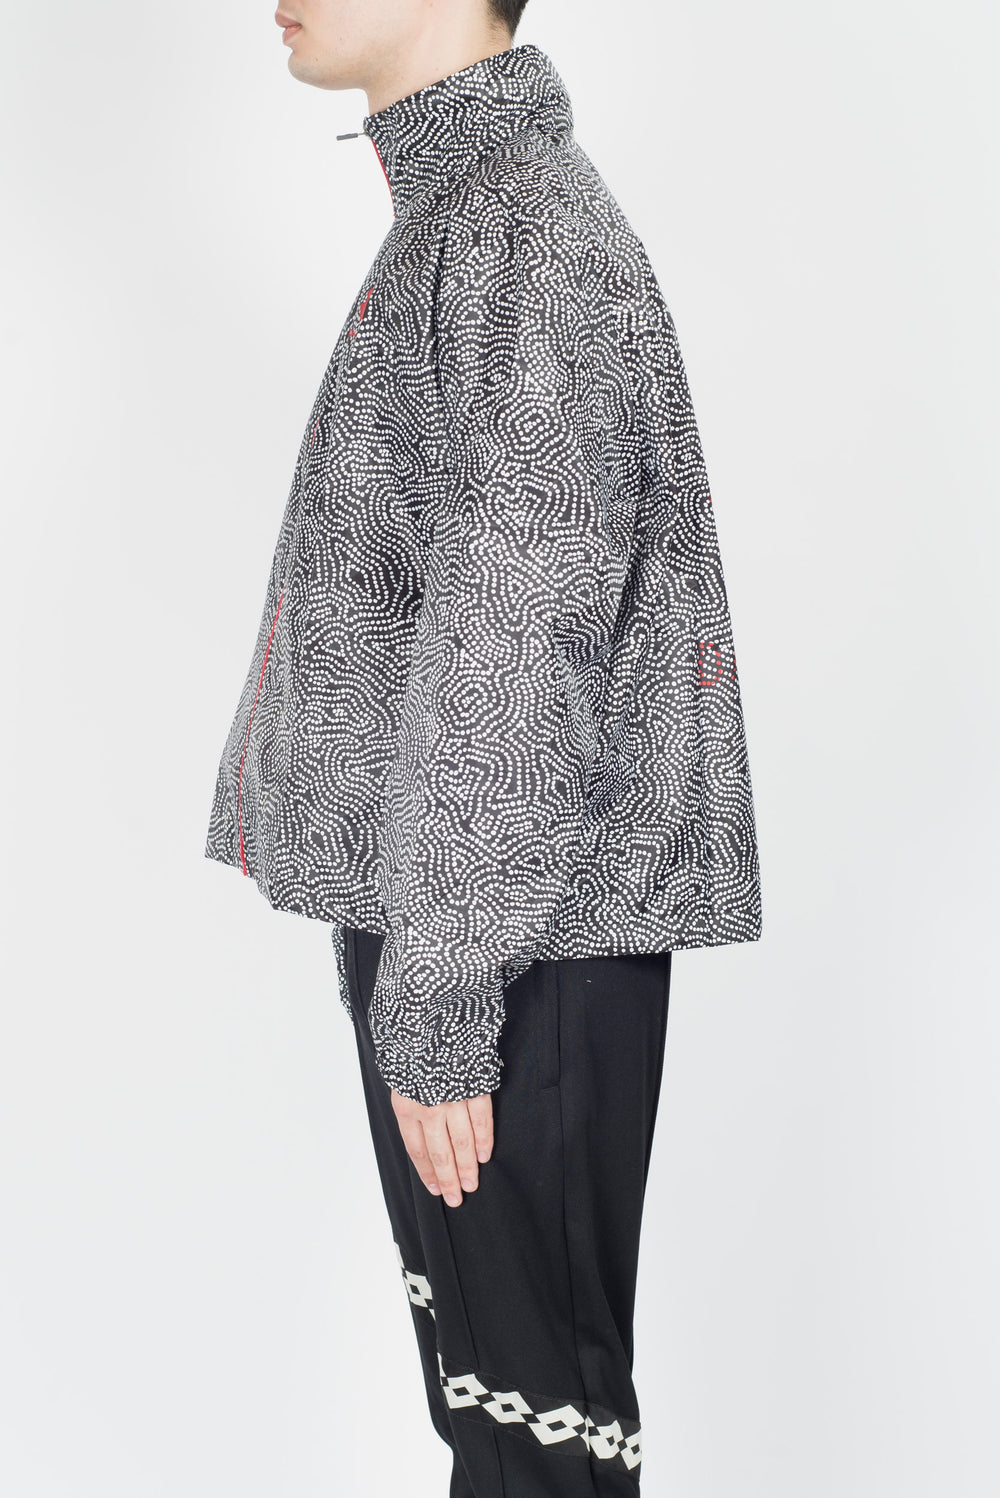 Damir Doma X Lotto Wahidia Jacket In Coal/White